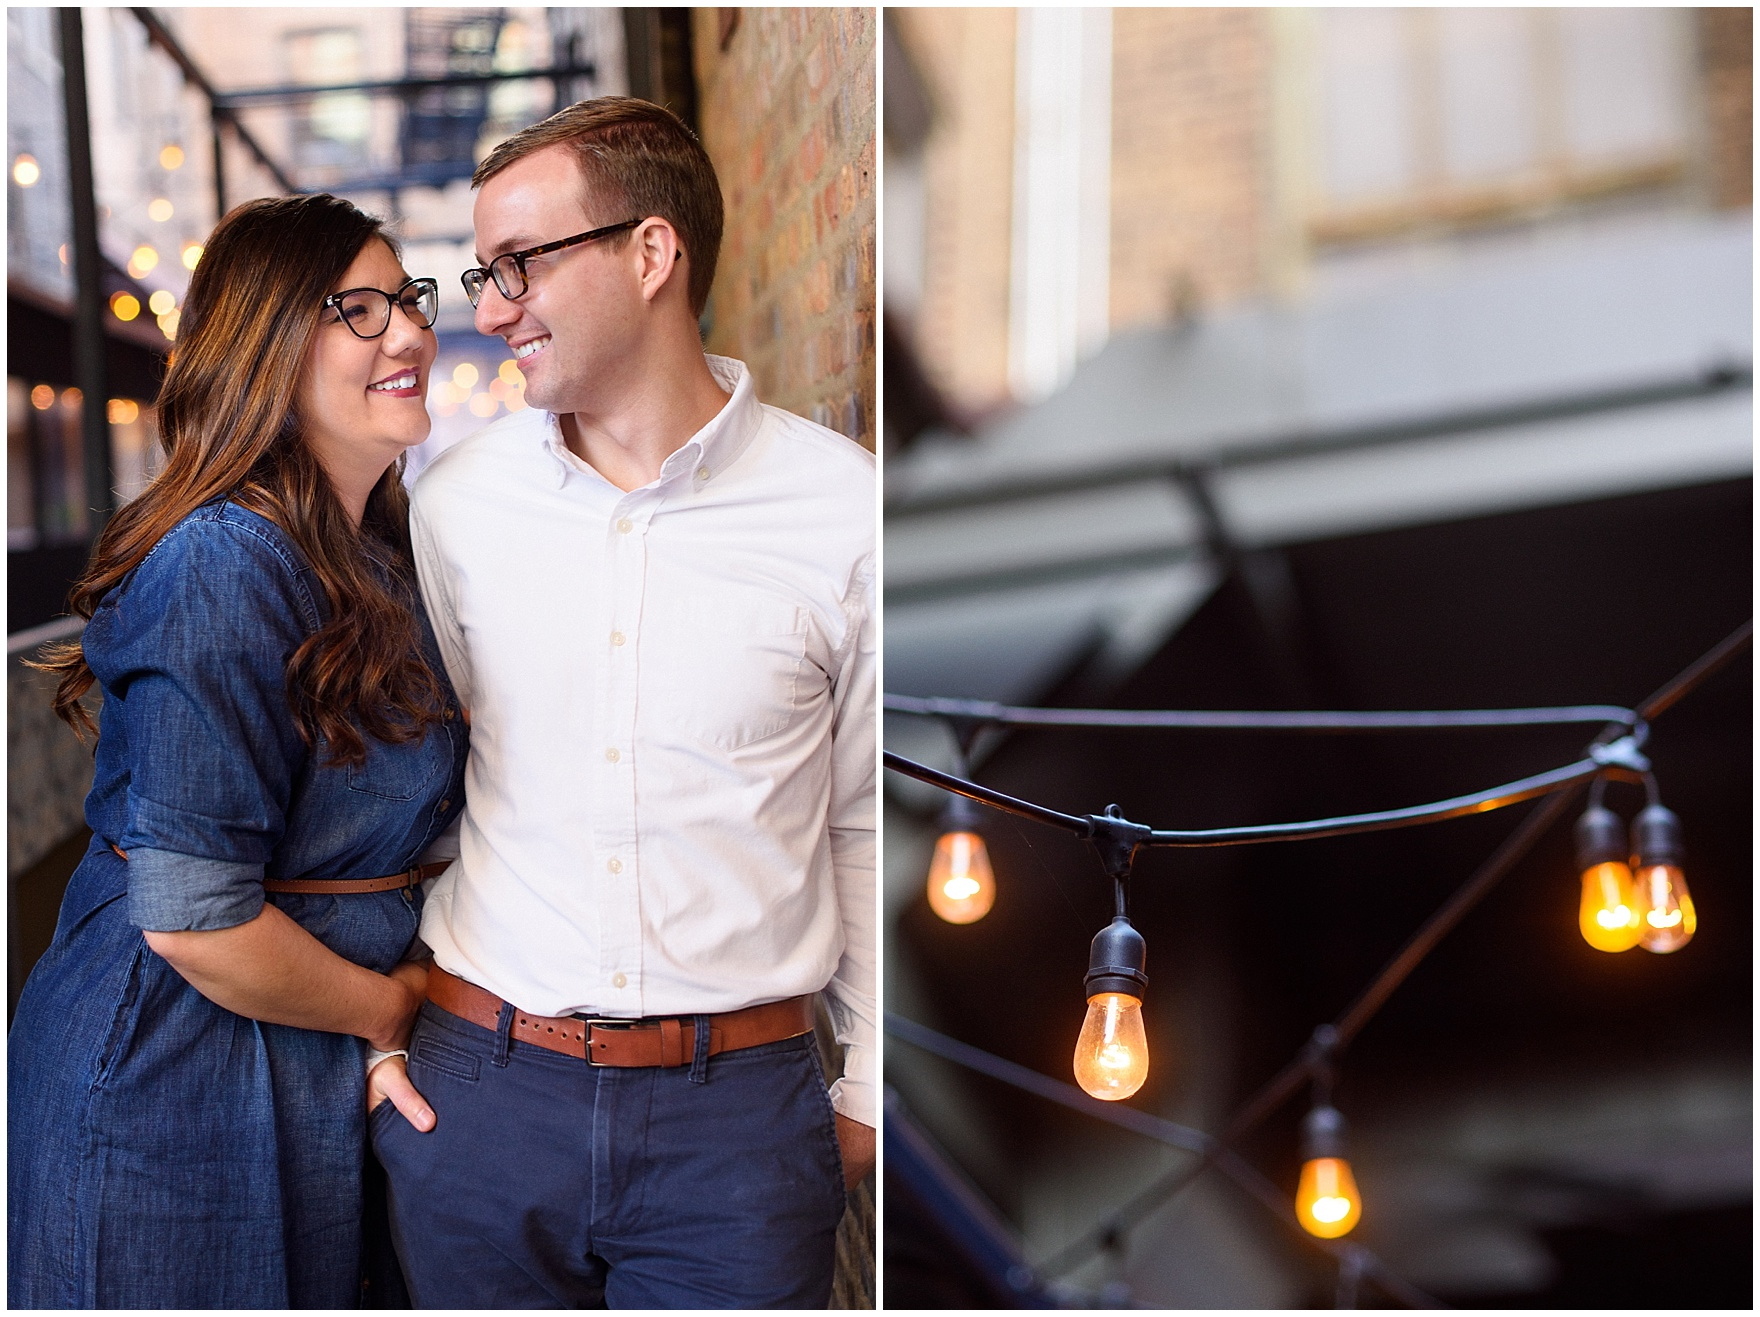 A couple poses in an alley with sparkly string lights during a West Loop Chicago photography session.